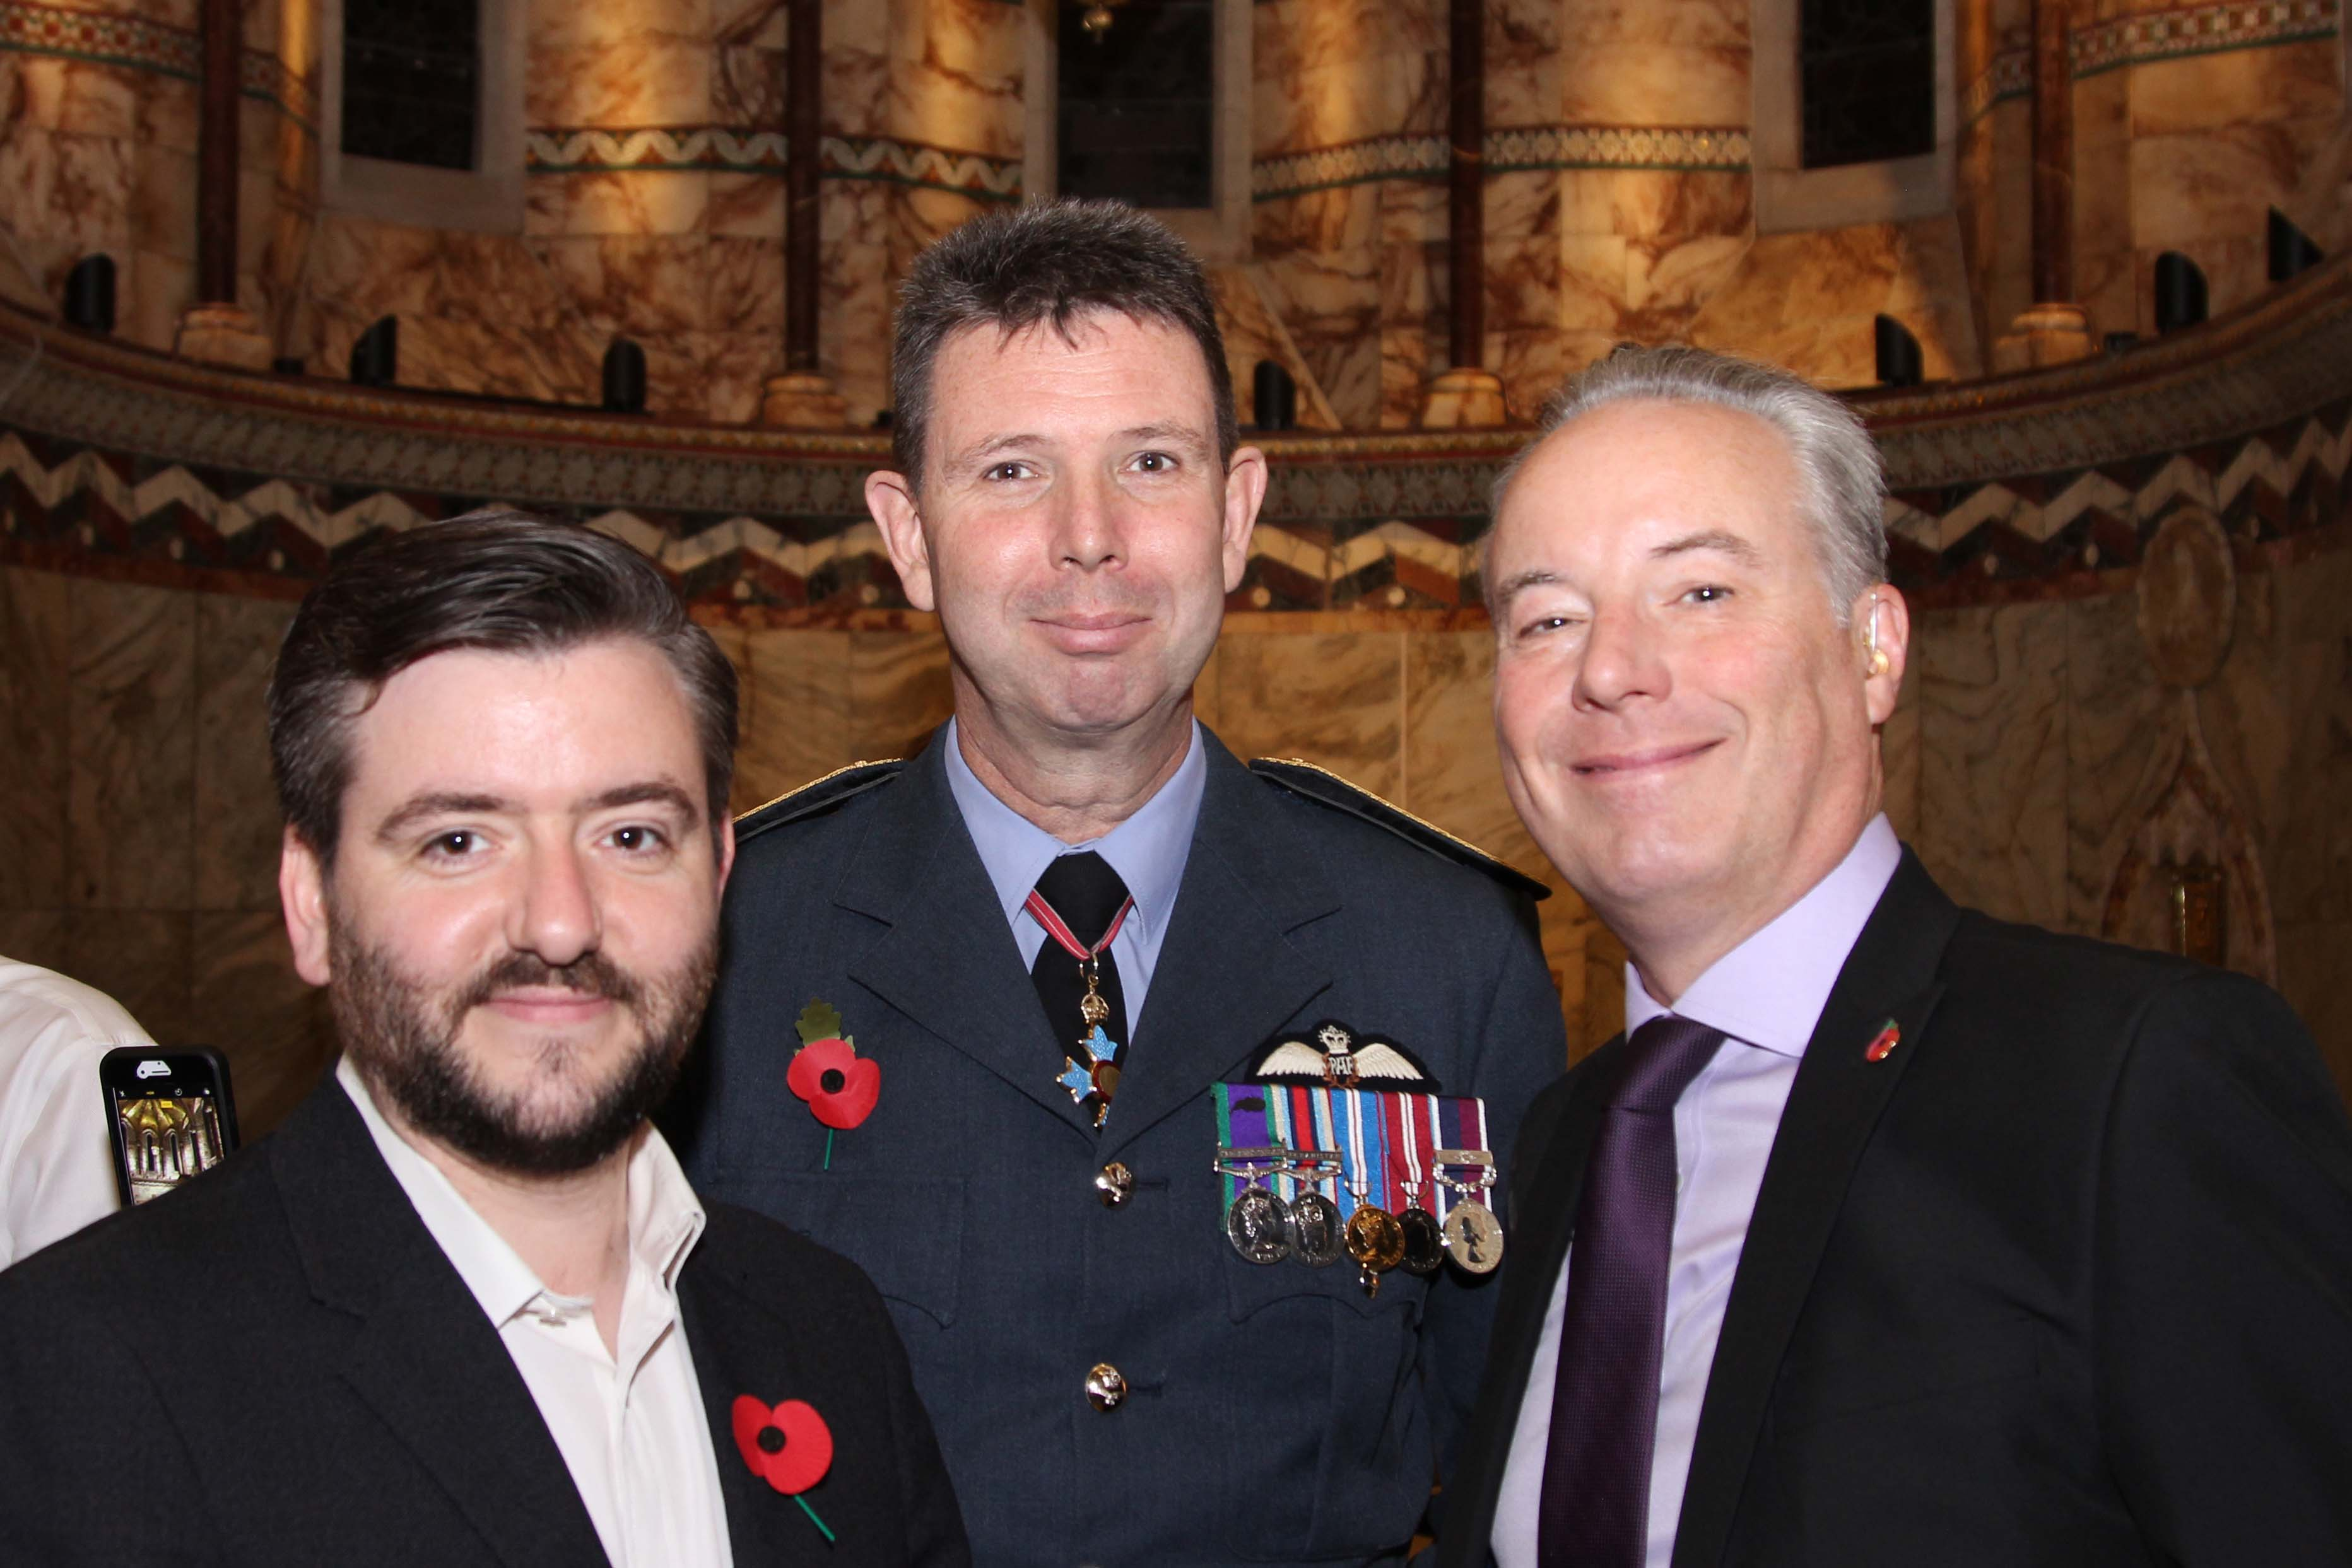 Chief Executive Humanists UK, Andrew Copson, Air Officer Commanding 22 (Training) Group, Air Vice Marshall James, and Senior Champion of the Defence Humanist Netwrok, Dr Roger Hutton.